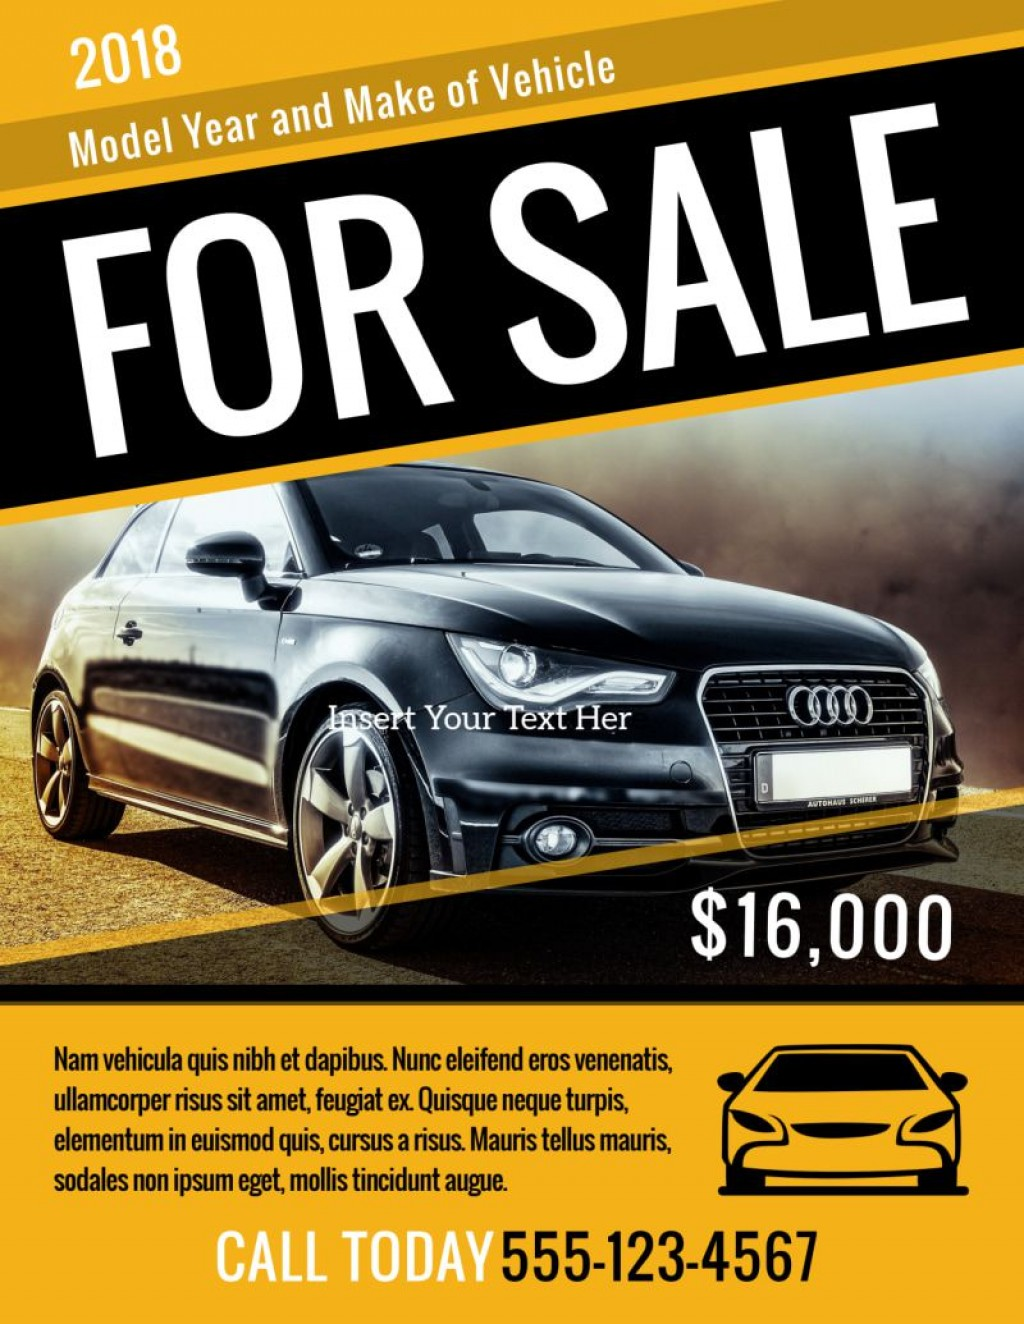 004 Best For Sale Flyer Template Design  Car Ad Microsoft Word HouseLarge